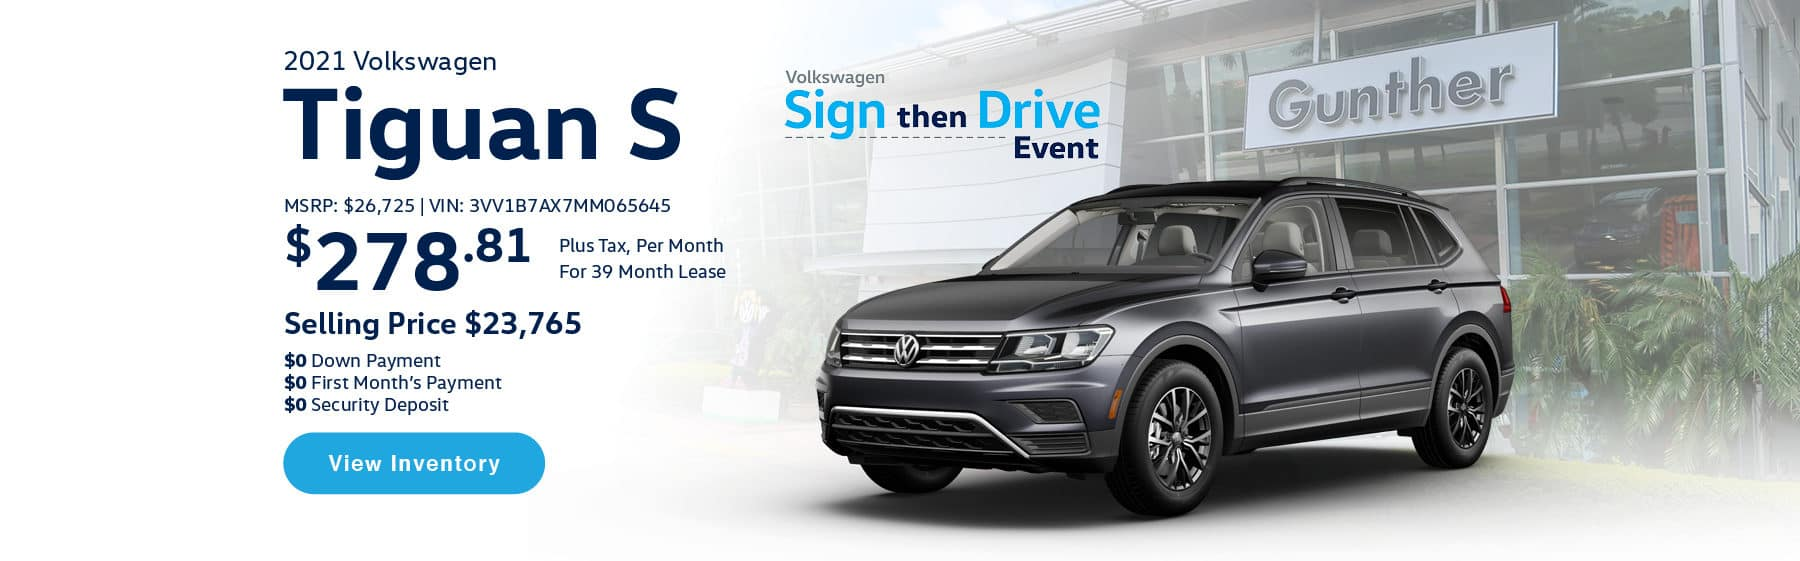 Lease the 2021 Tiguan S for $278.81 per month, plus tax for 39 months. Selling price is $23,765. $0 Down Payment, $0 First Month's Payment, $0 Security Deposit. $26,725 MSRP. Vin #: 3VV1B7AX7MM065645. Click or tap here to visit our inventory.